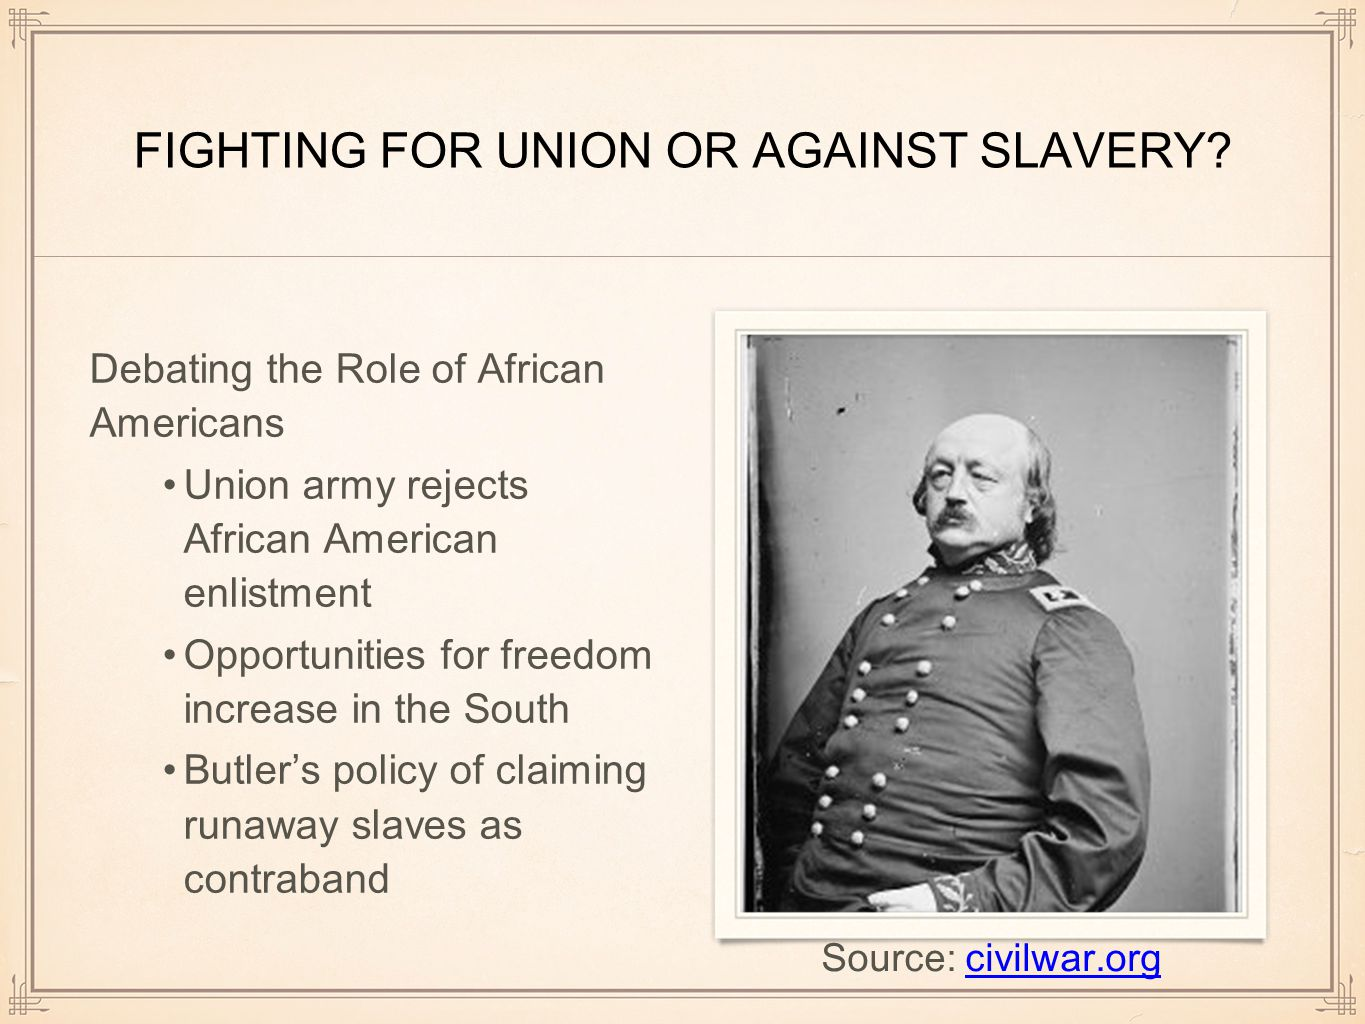 FIGHTING FOR UNION OR AGAINST SLAVERY.